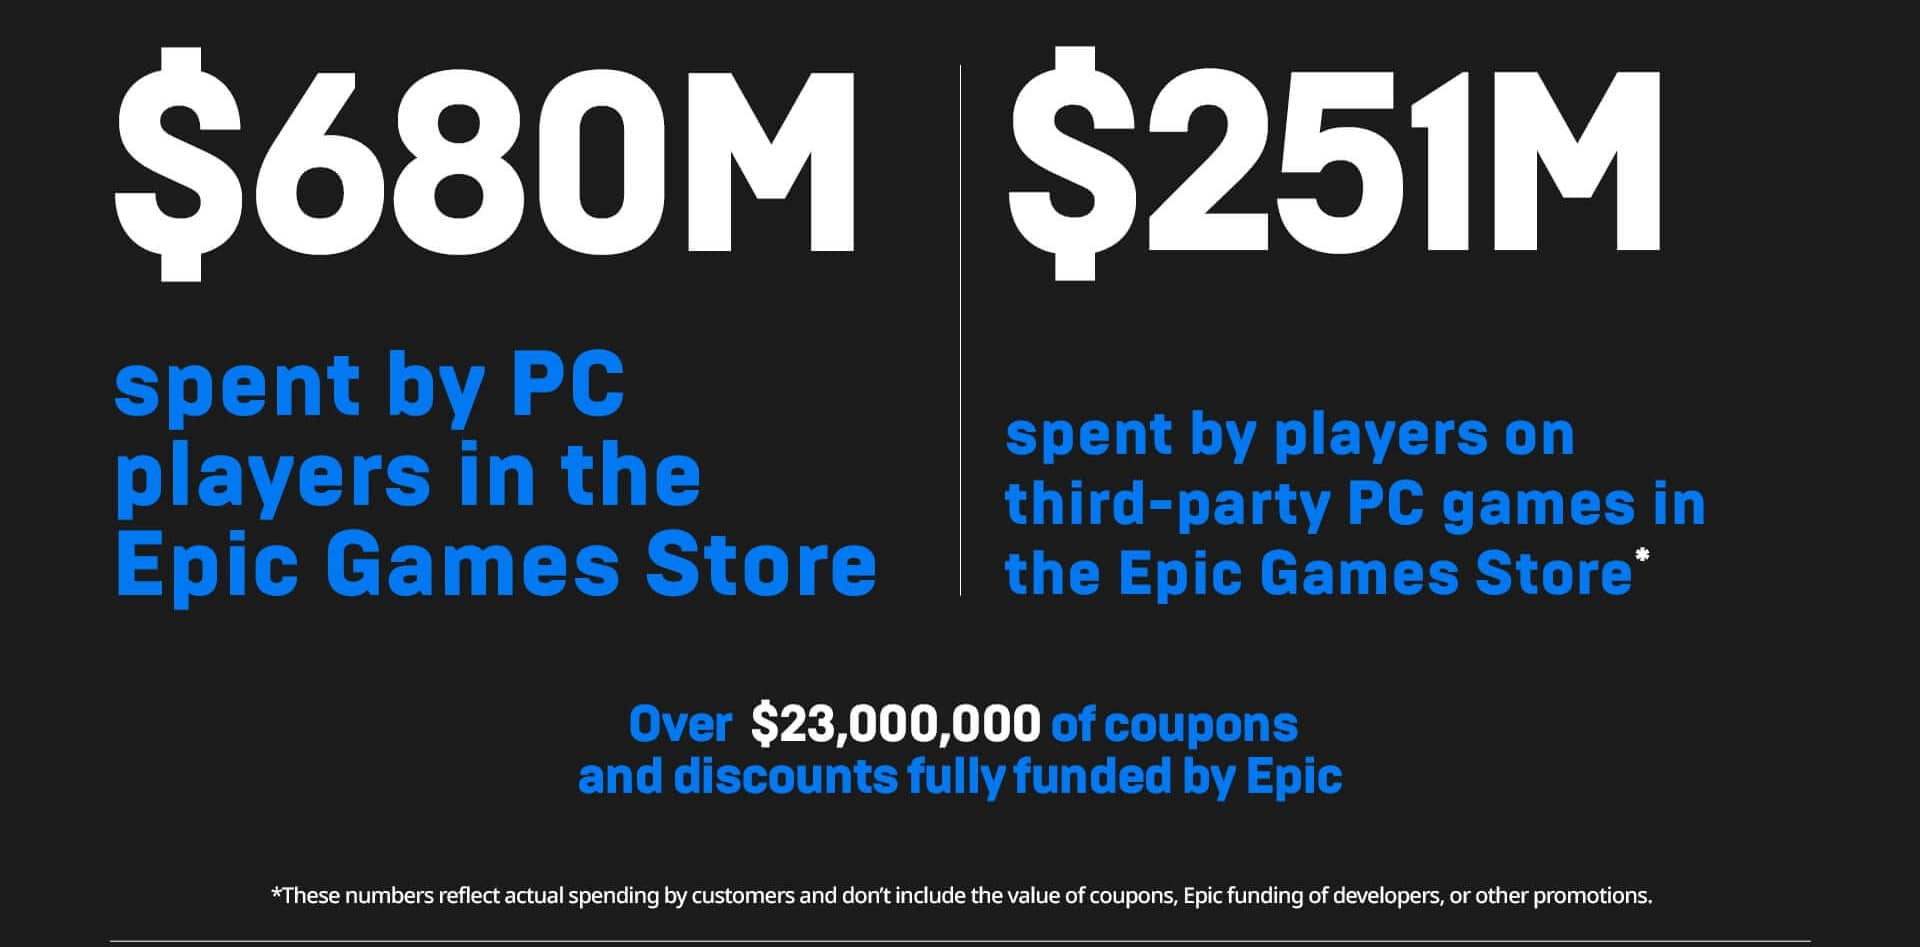 epic games store 2019 2